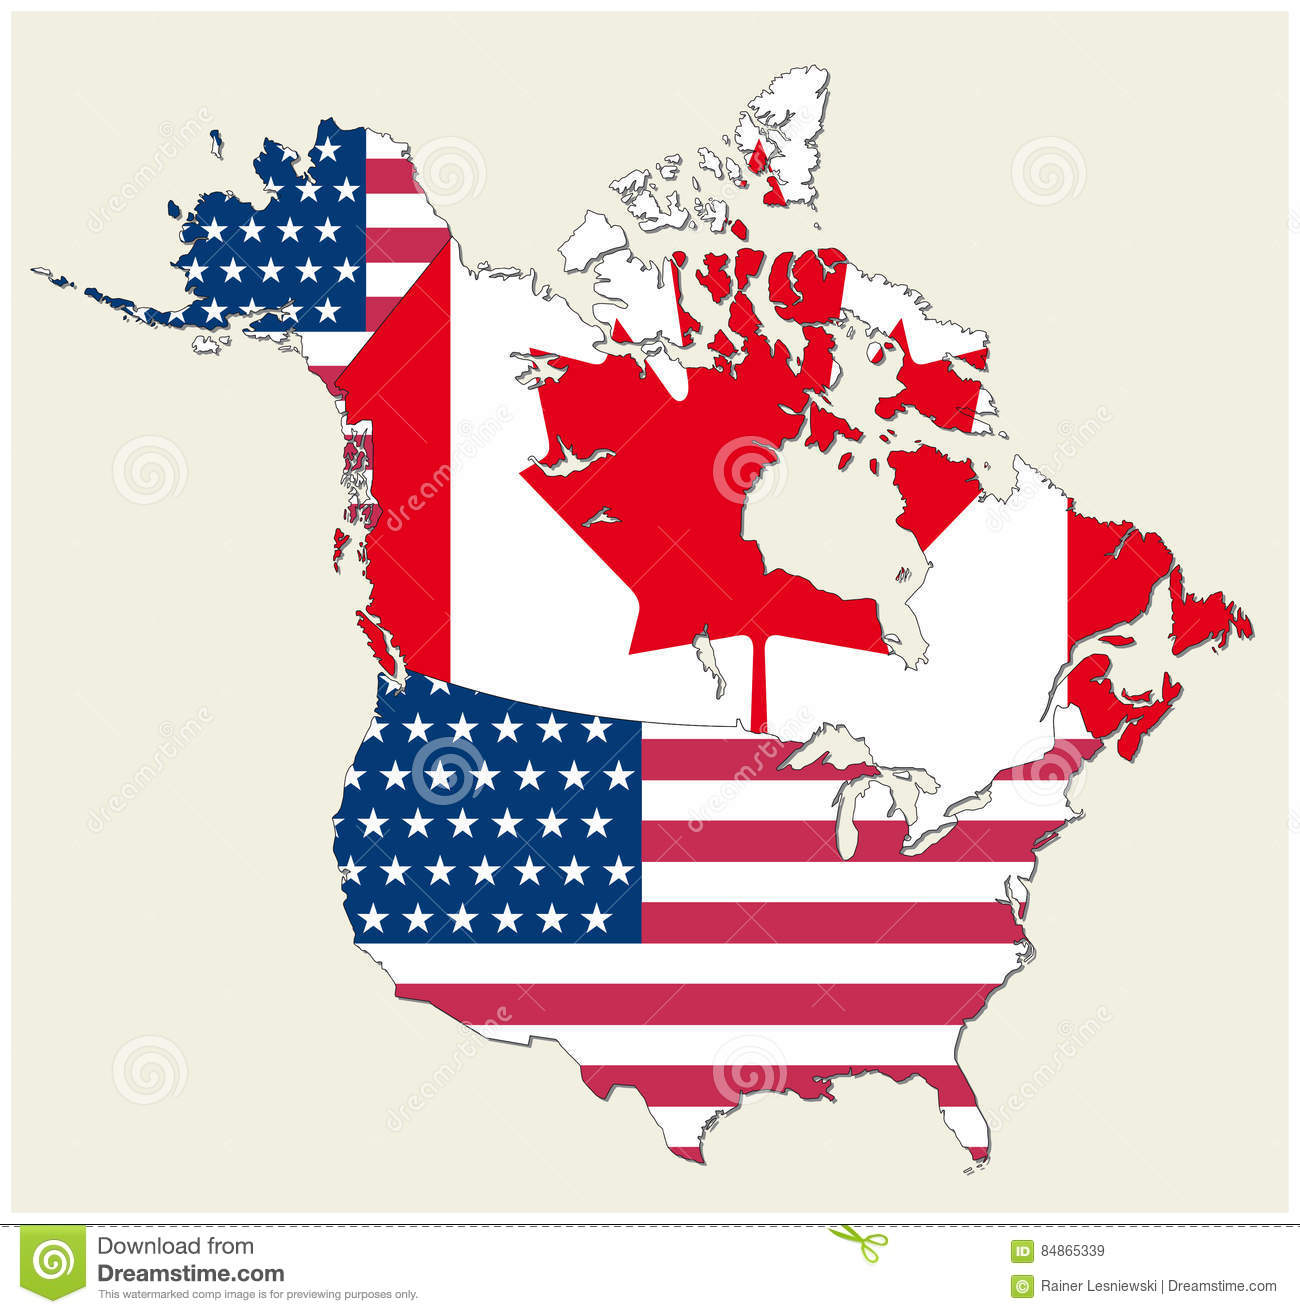 State flag map of the u.s (united states): Usa Canada Flag Map Stock Illustrations 2 154 Usa Canada Flag Map Stock Illustrations Vectors Clipart Dreamstime